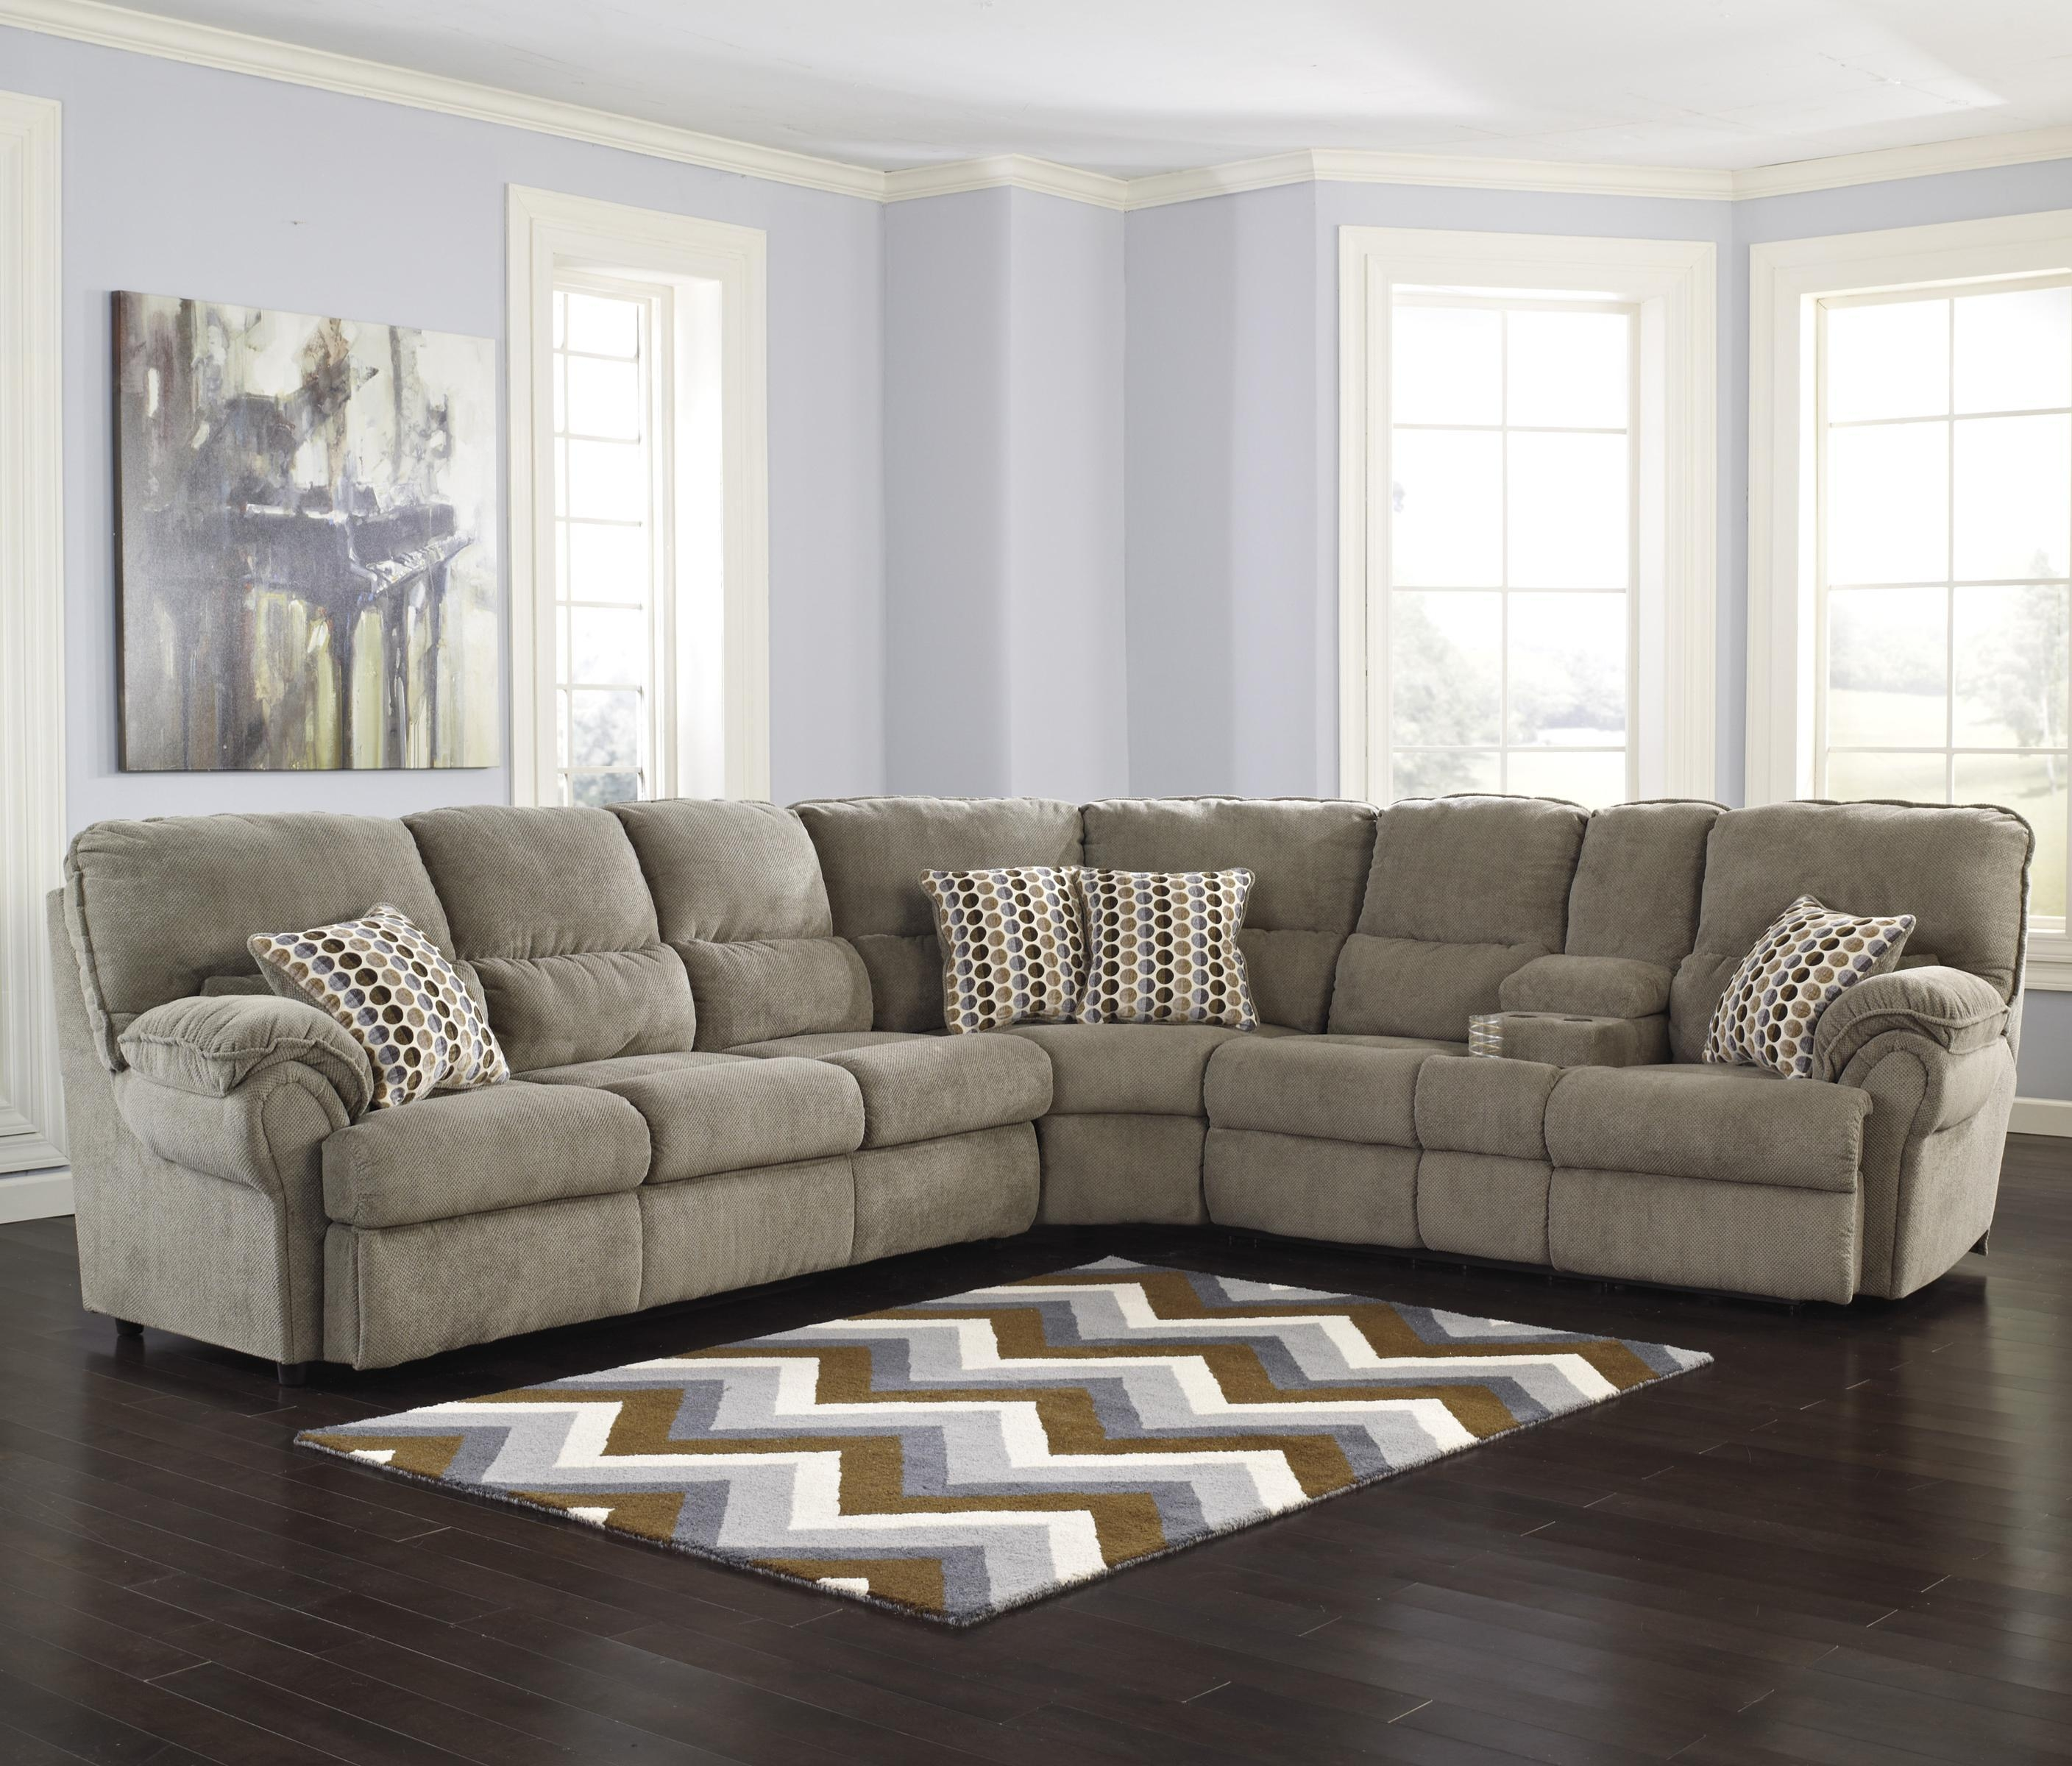 Sectional Sofa With Recliner And Queen Sleeper | Tehranmix Decoration With Sleeper Recliner Sectional (View 5 of 20)